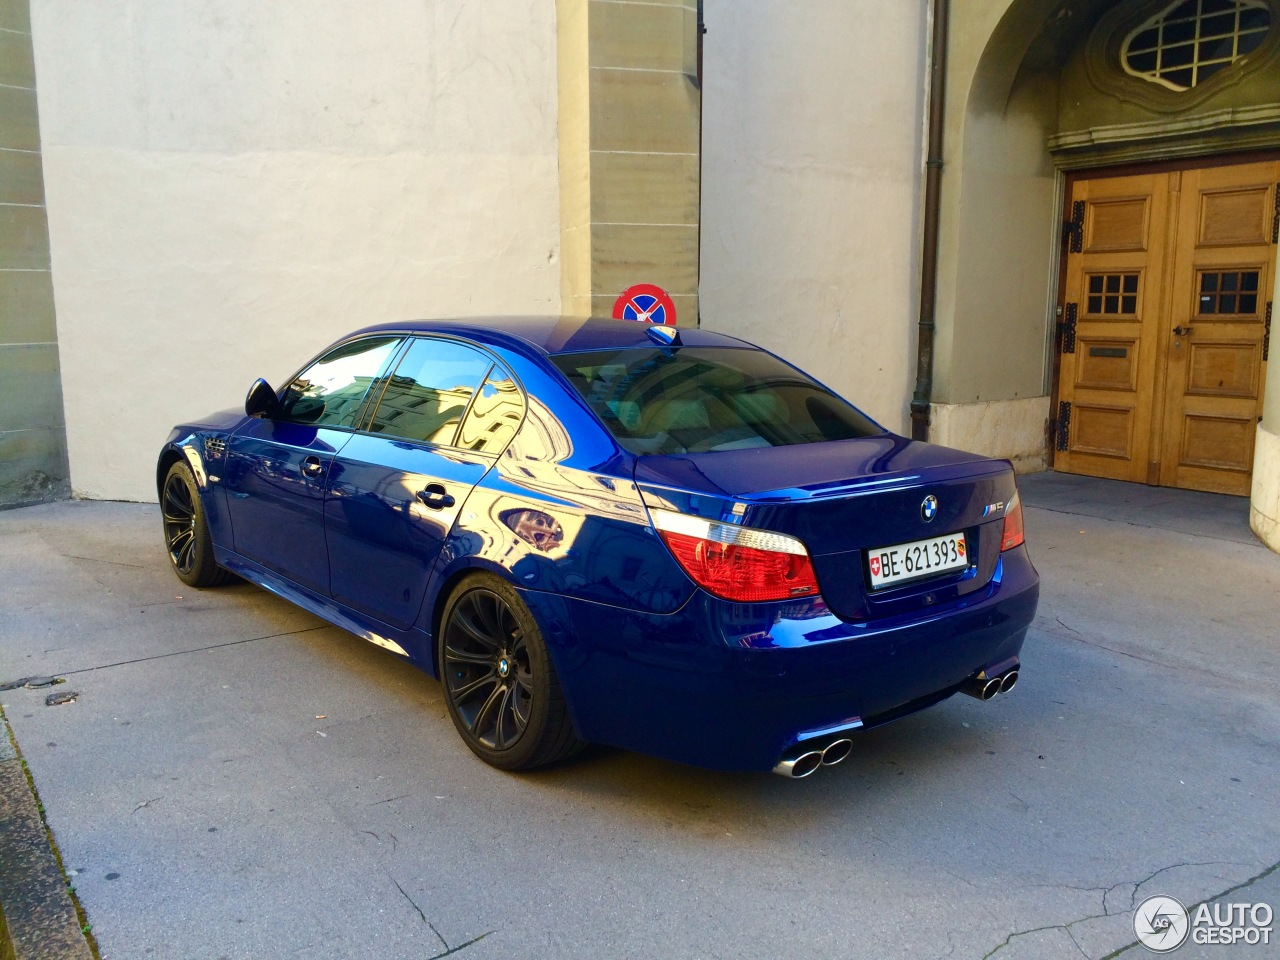 BMW M5 E60 2007 - 13 April 2015 - Autogespot